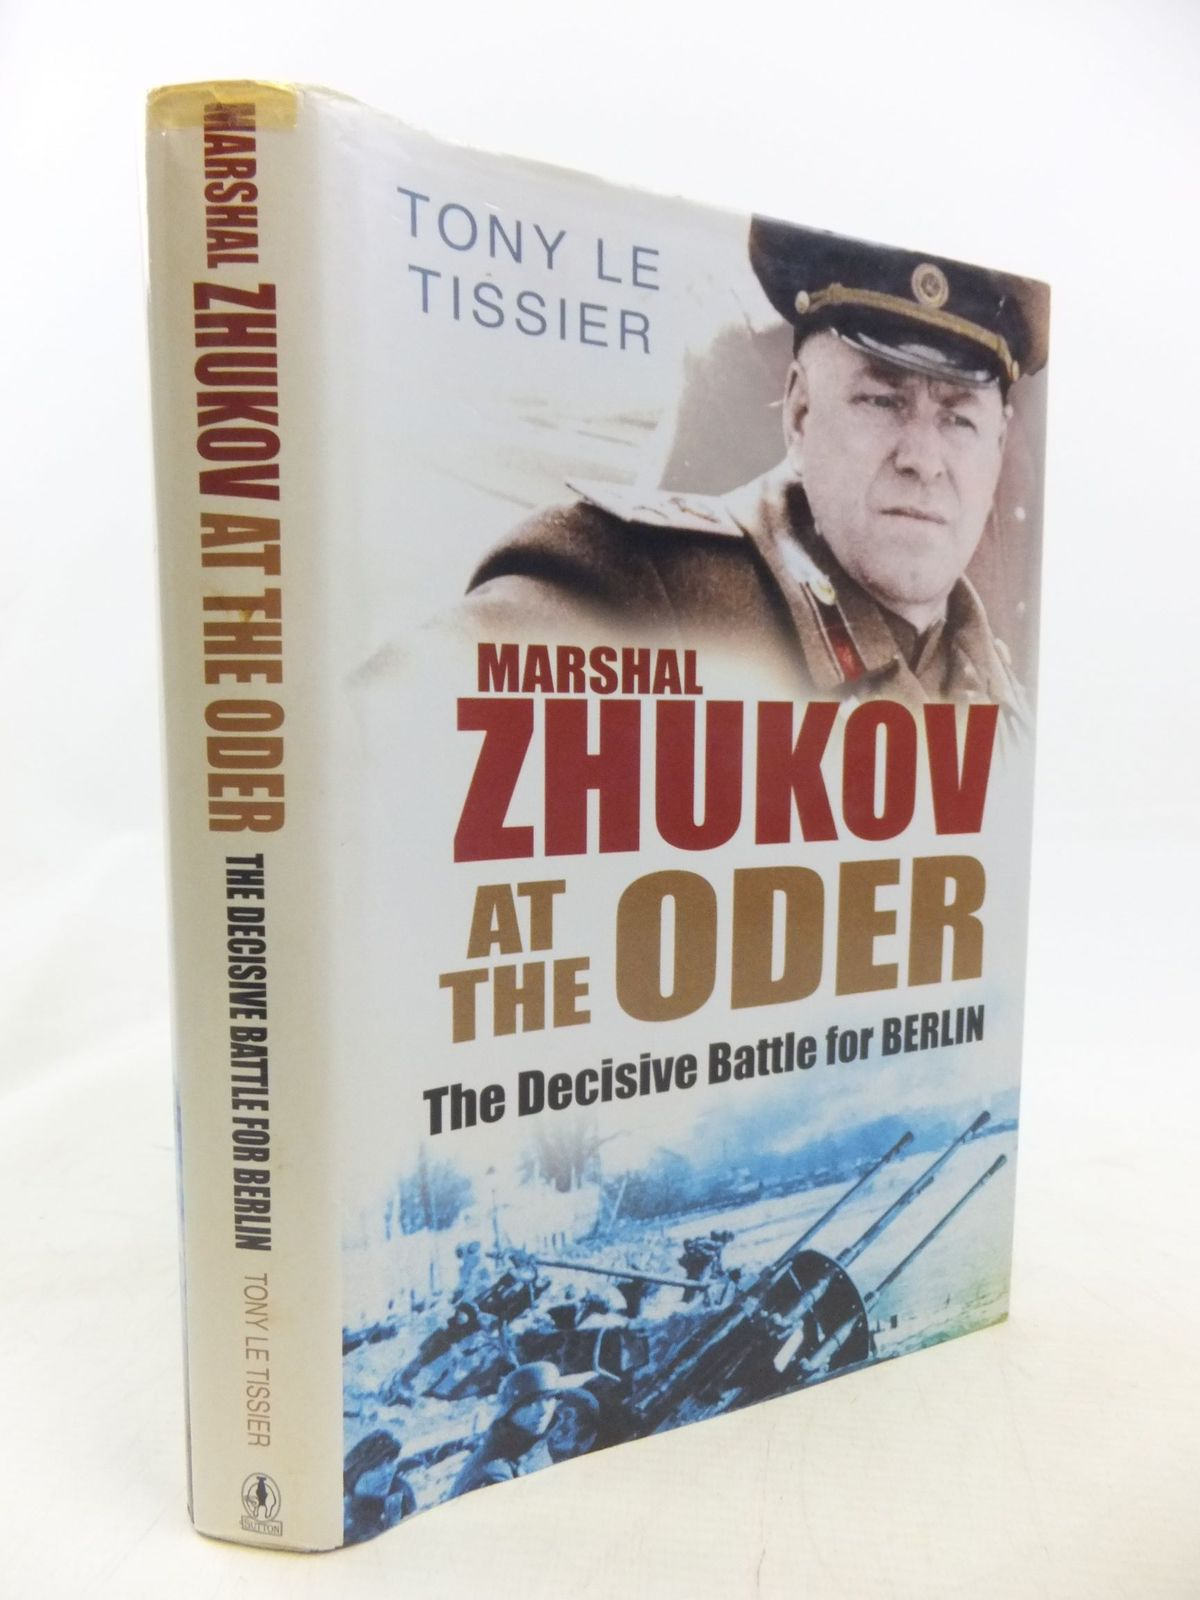 Photo of MARSHAL ZHUKOVE AT THE ODER THE DECISIVE BATTLE FOR BERLIN written by Le Tissier, Tony published by Sutton Publishing (STOCK CODE: 1711941)  for sale by Stella & Rose's Books